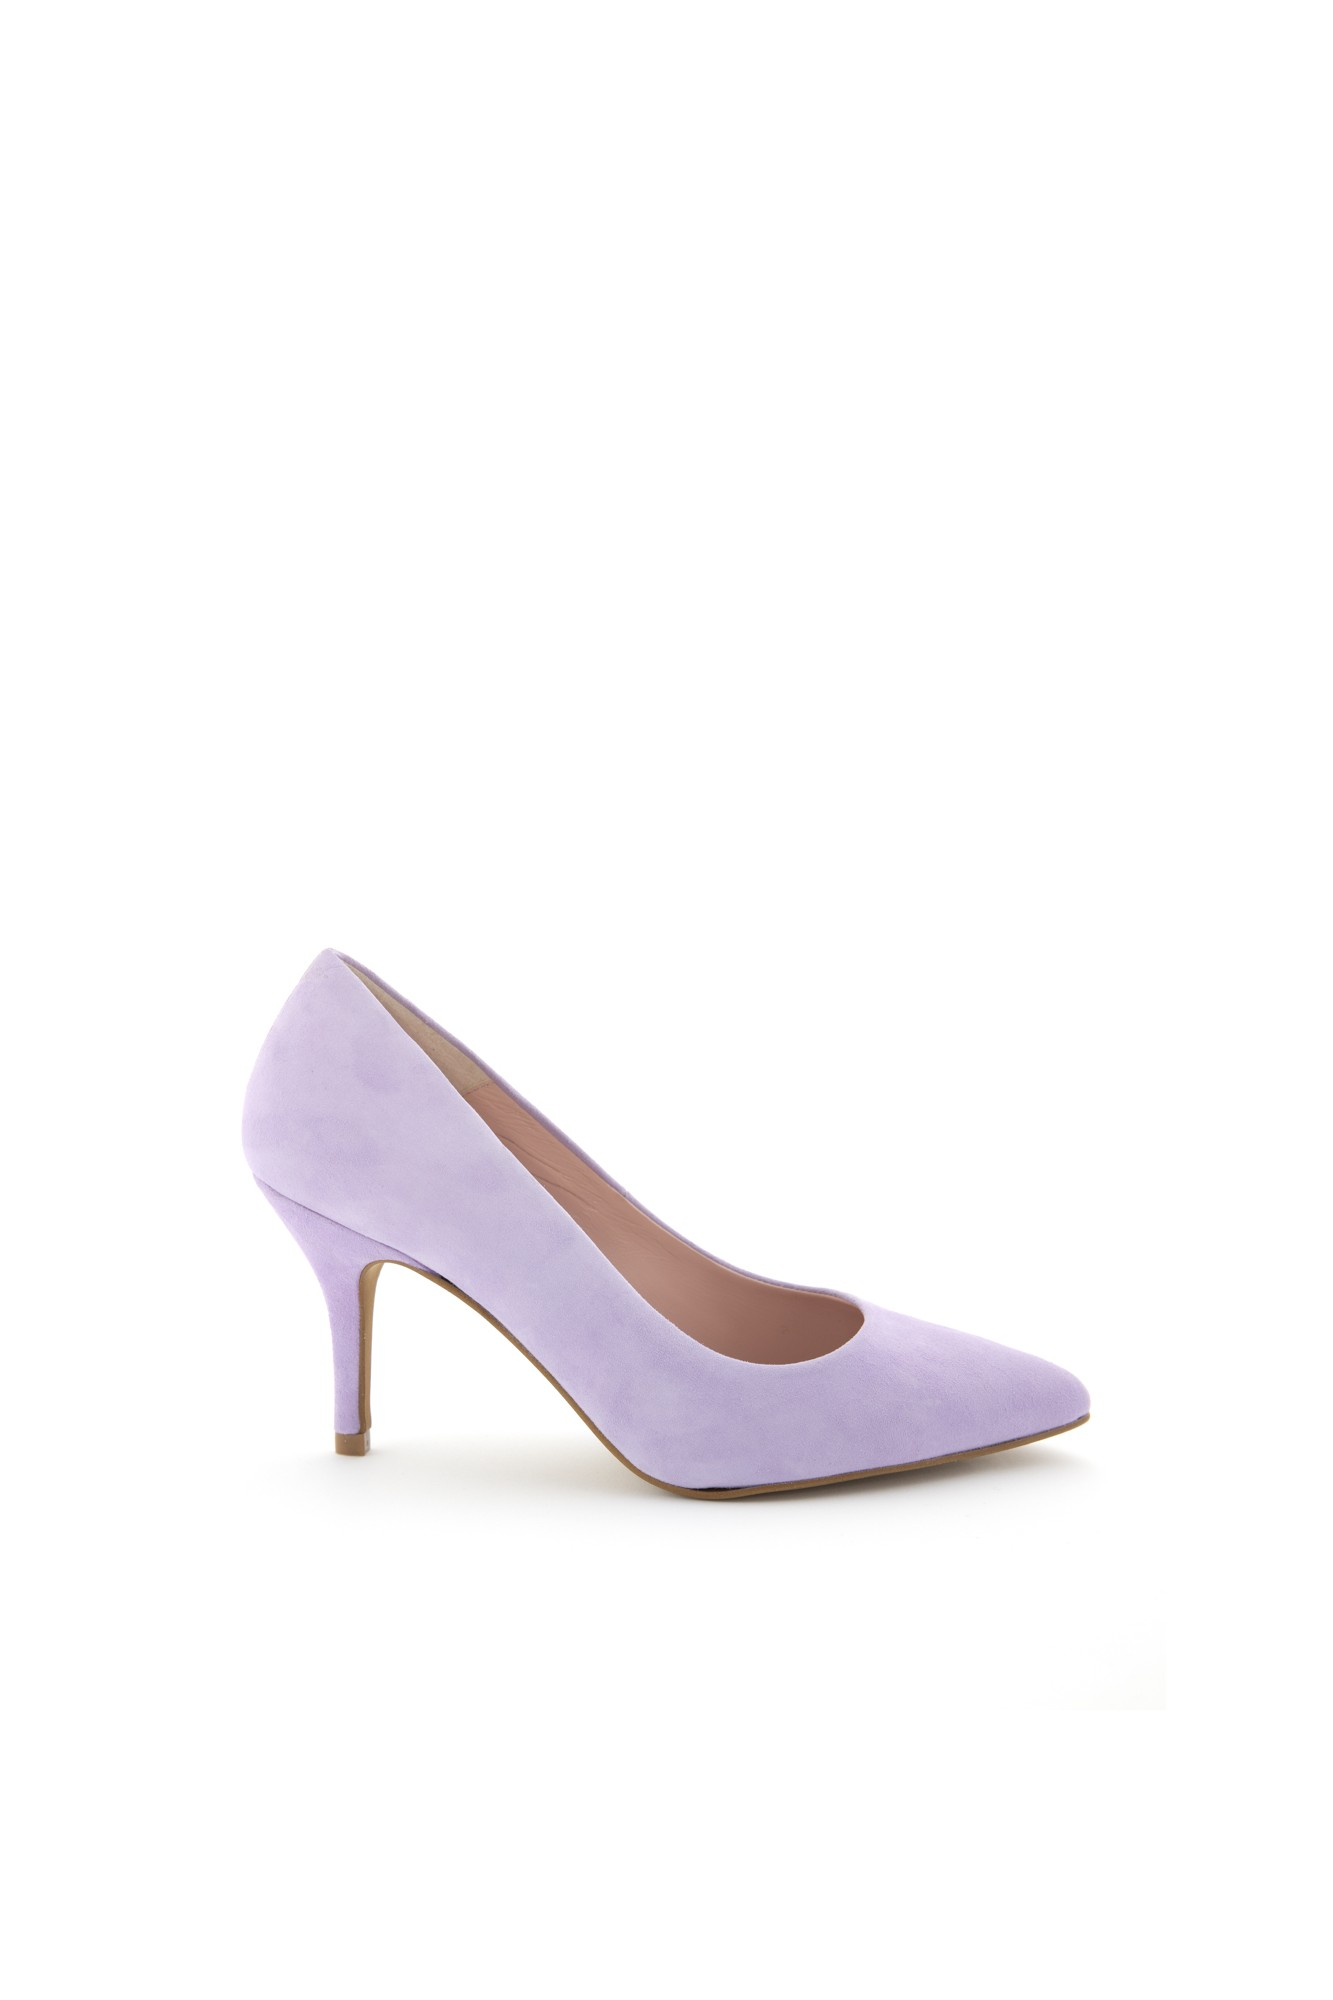 BIEL PURPLE SHOES